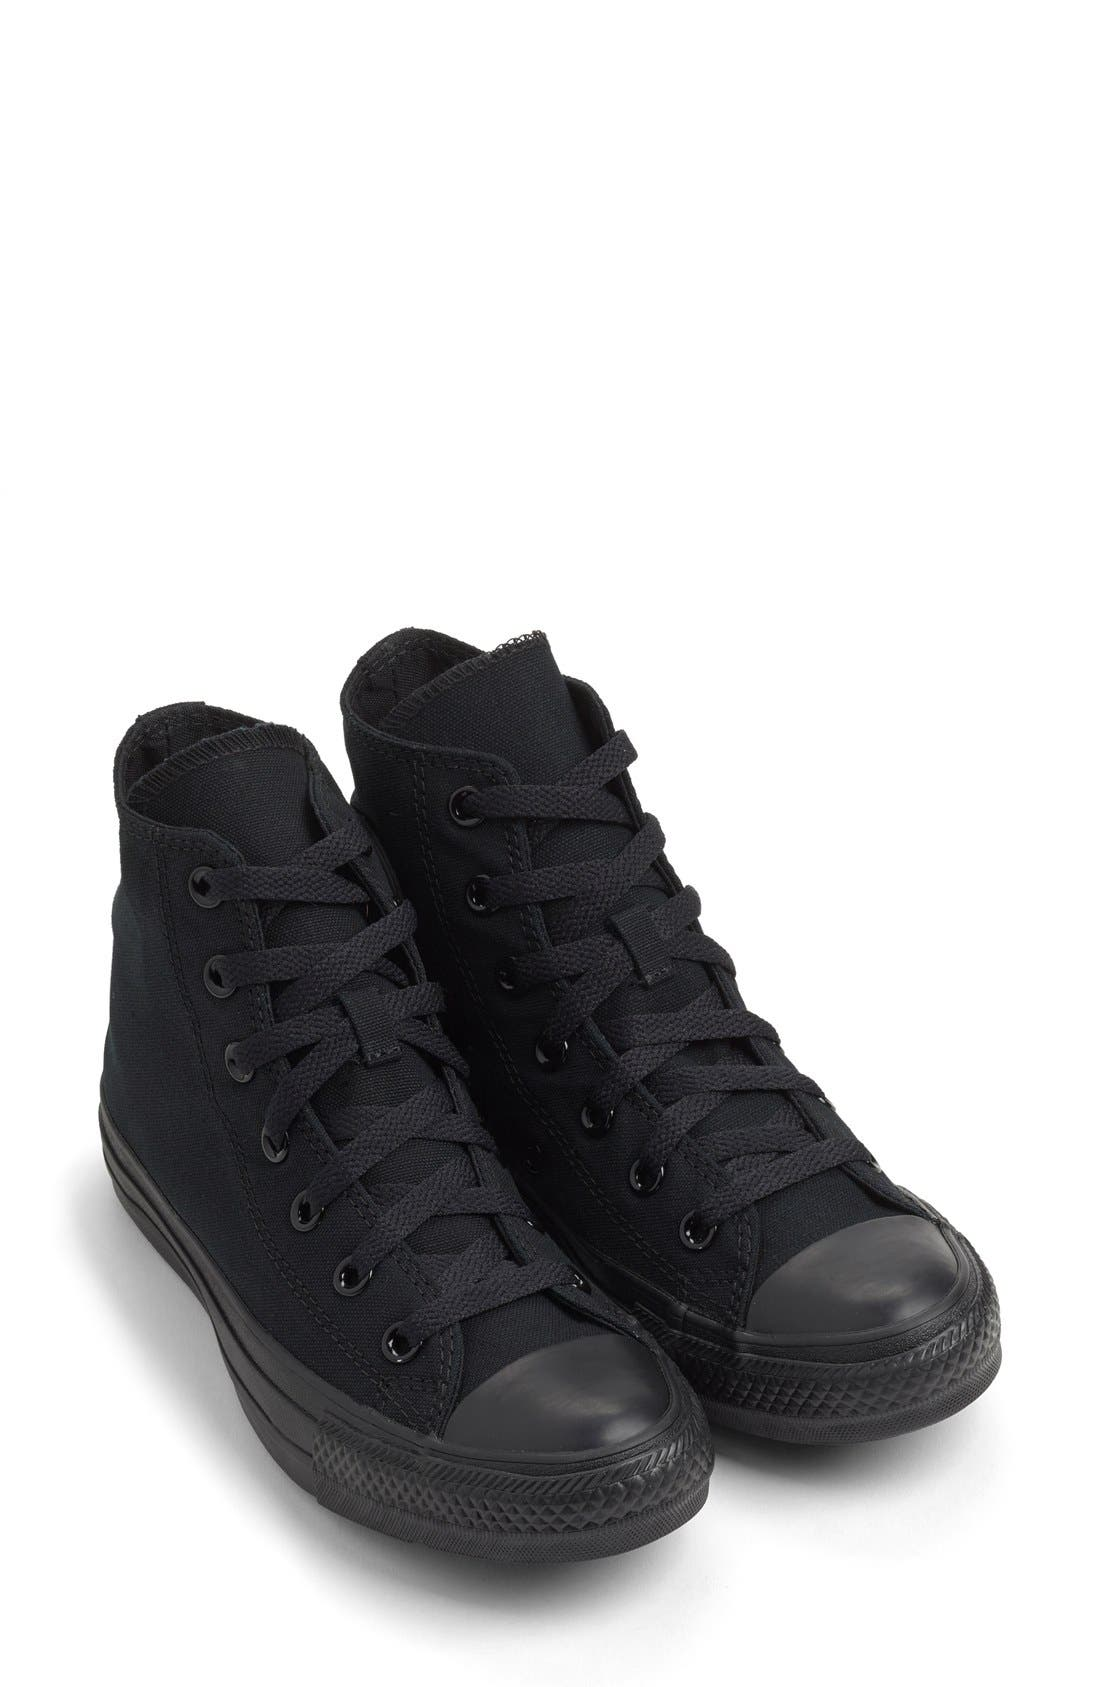 Chuck Taylor<sup>®</sup> All Star<sup>®</sup> Monochrome High Top Sneaker,                             Alternate thumbnail 2, color,                             001